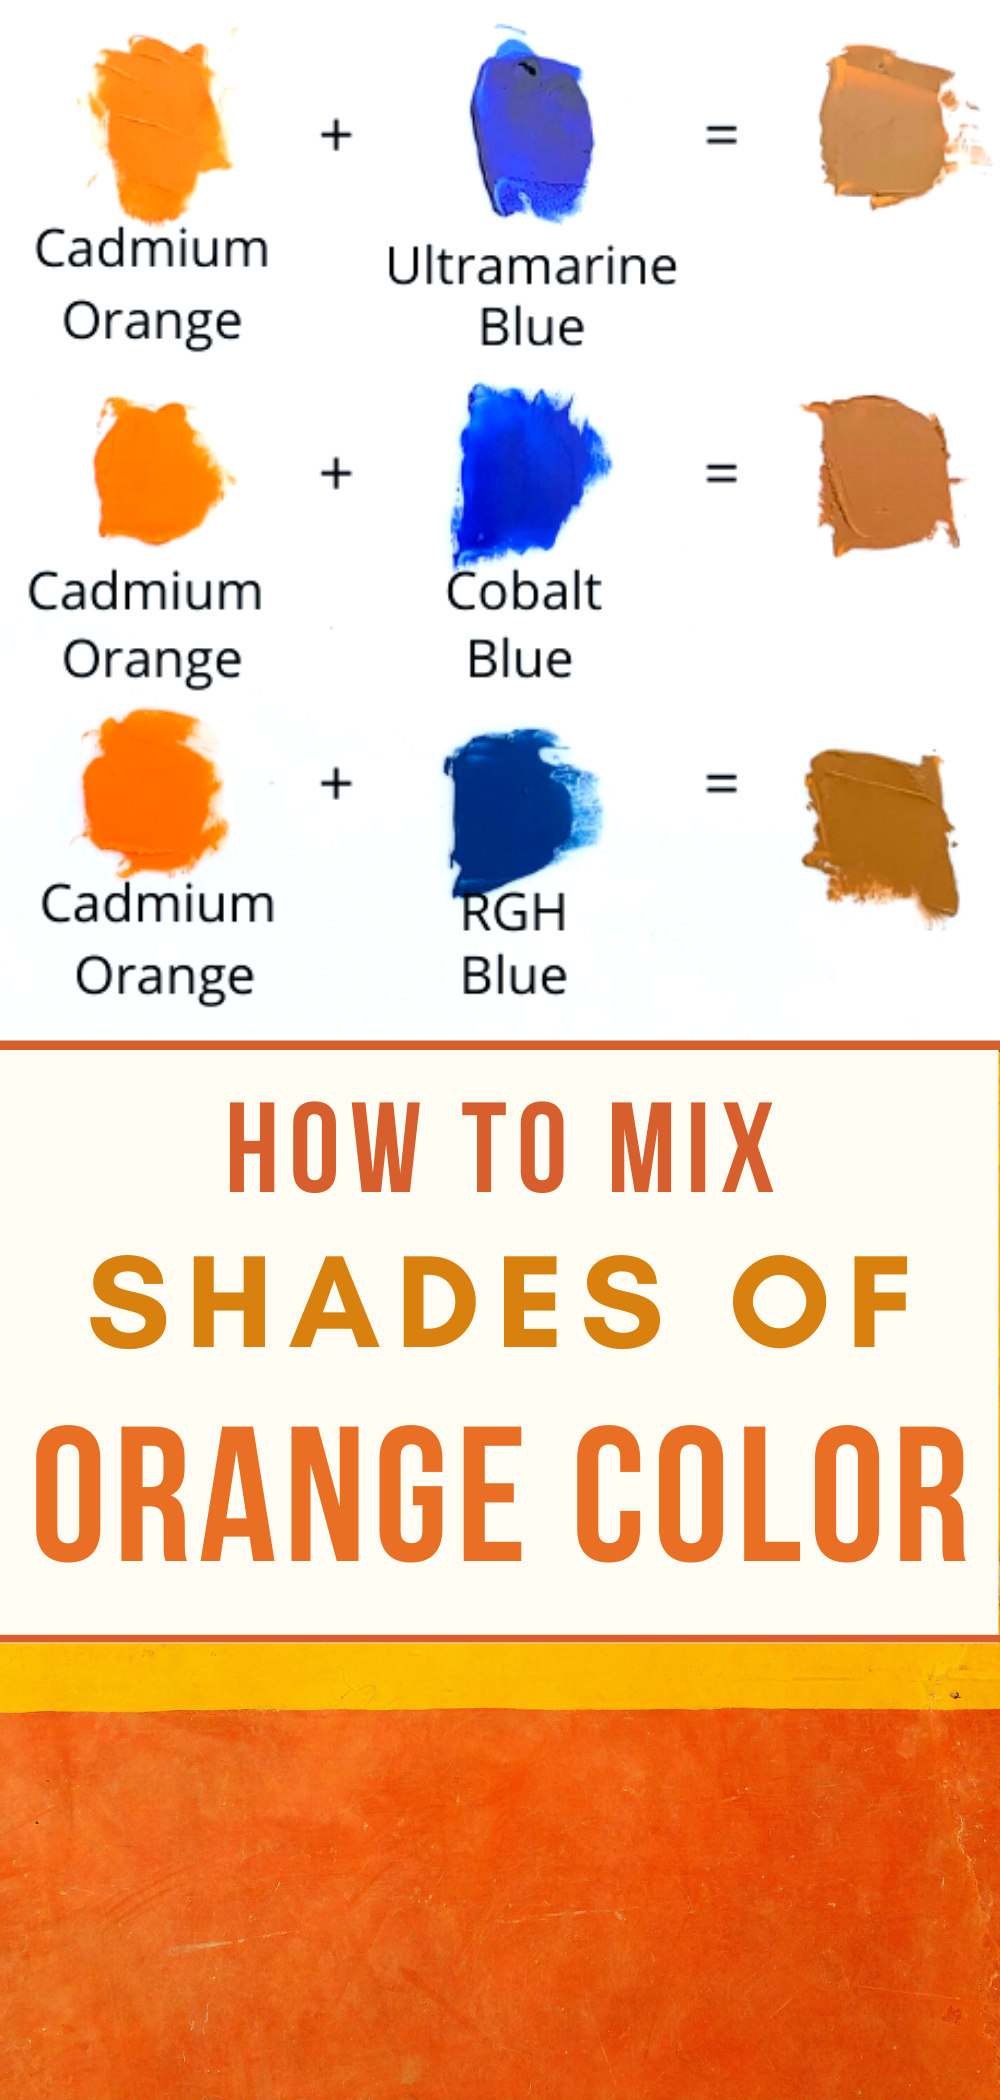 Detailed Steps How To Mix Orange Colors For Painting In 2020 Color Mixing Guide What Colors Make Orange Mixing Paint Colors